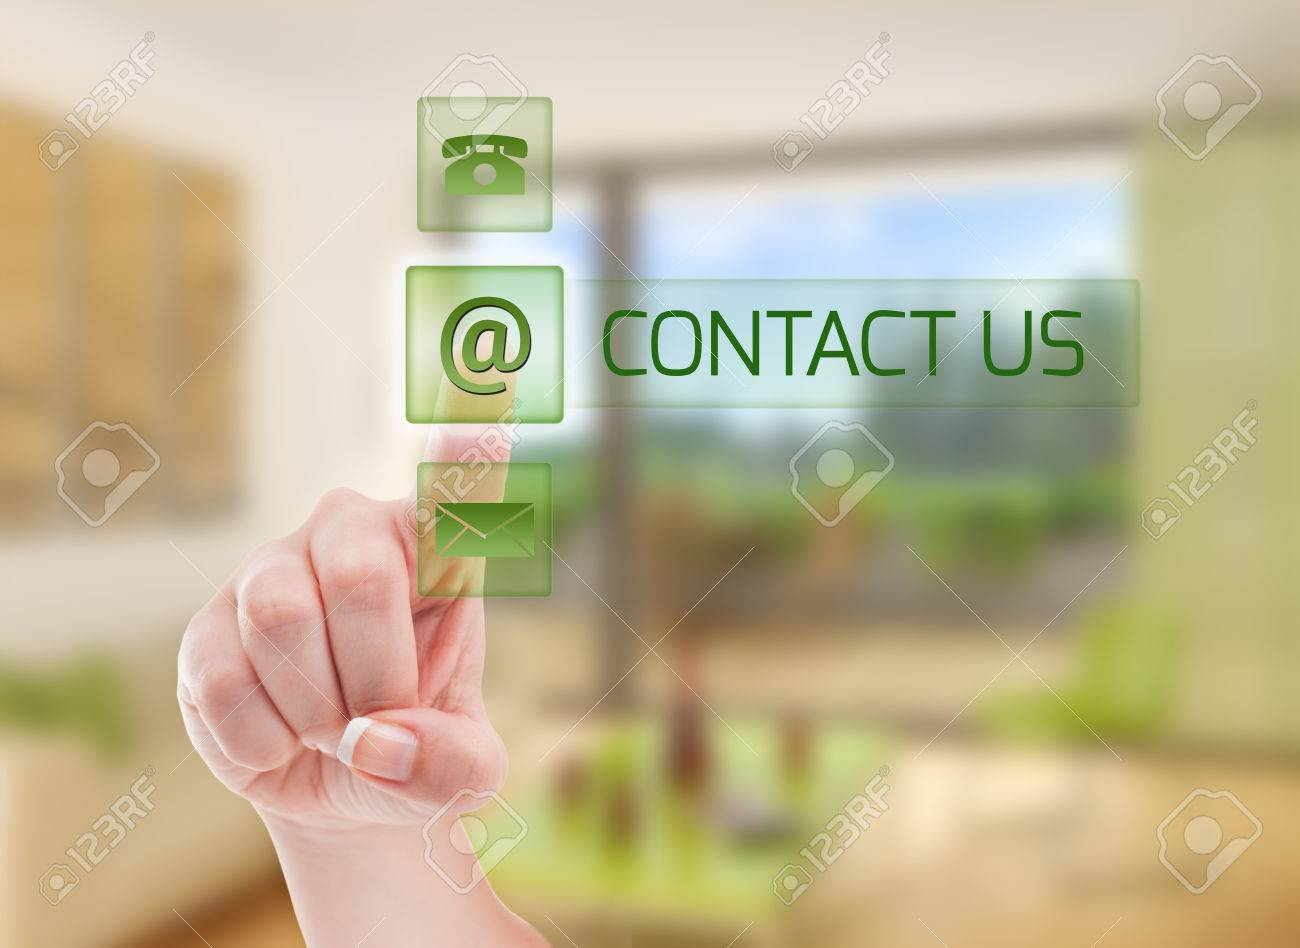 Contact real estate agency futuristic concept using a woman pressing a button on transparent screen with house interior as background - 35160433